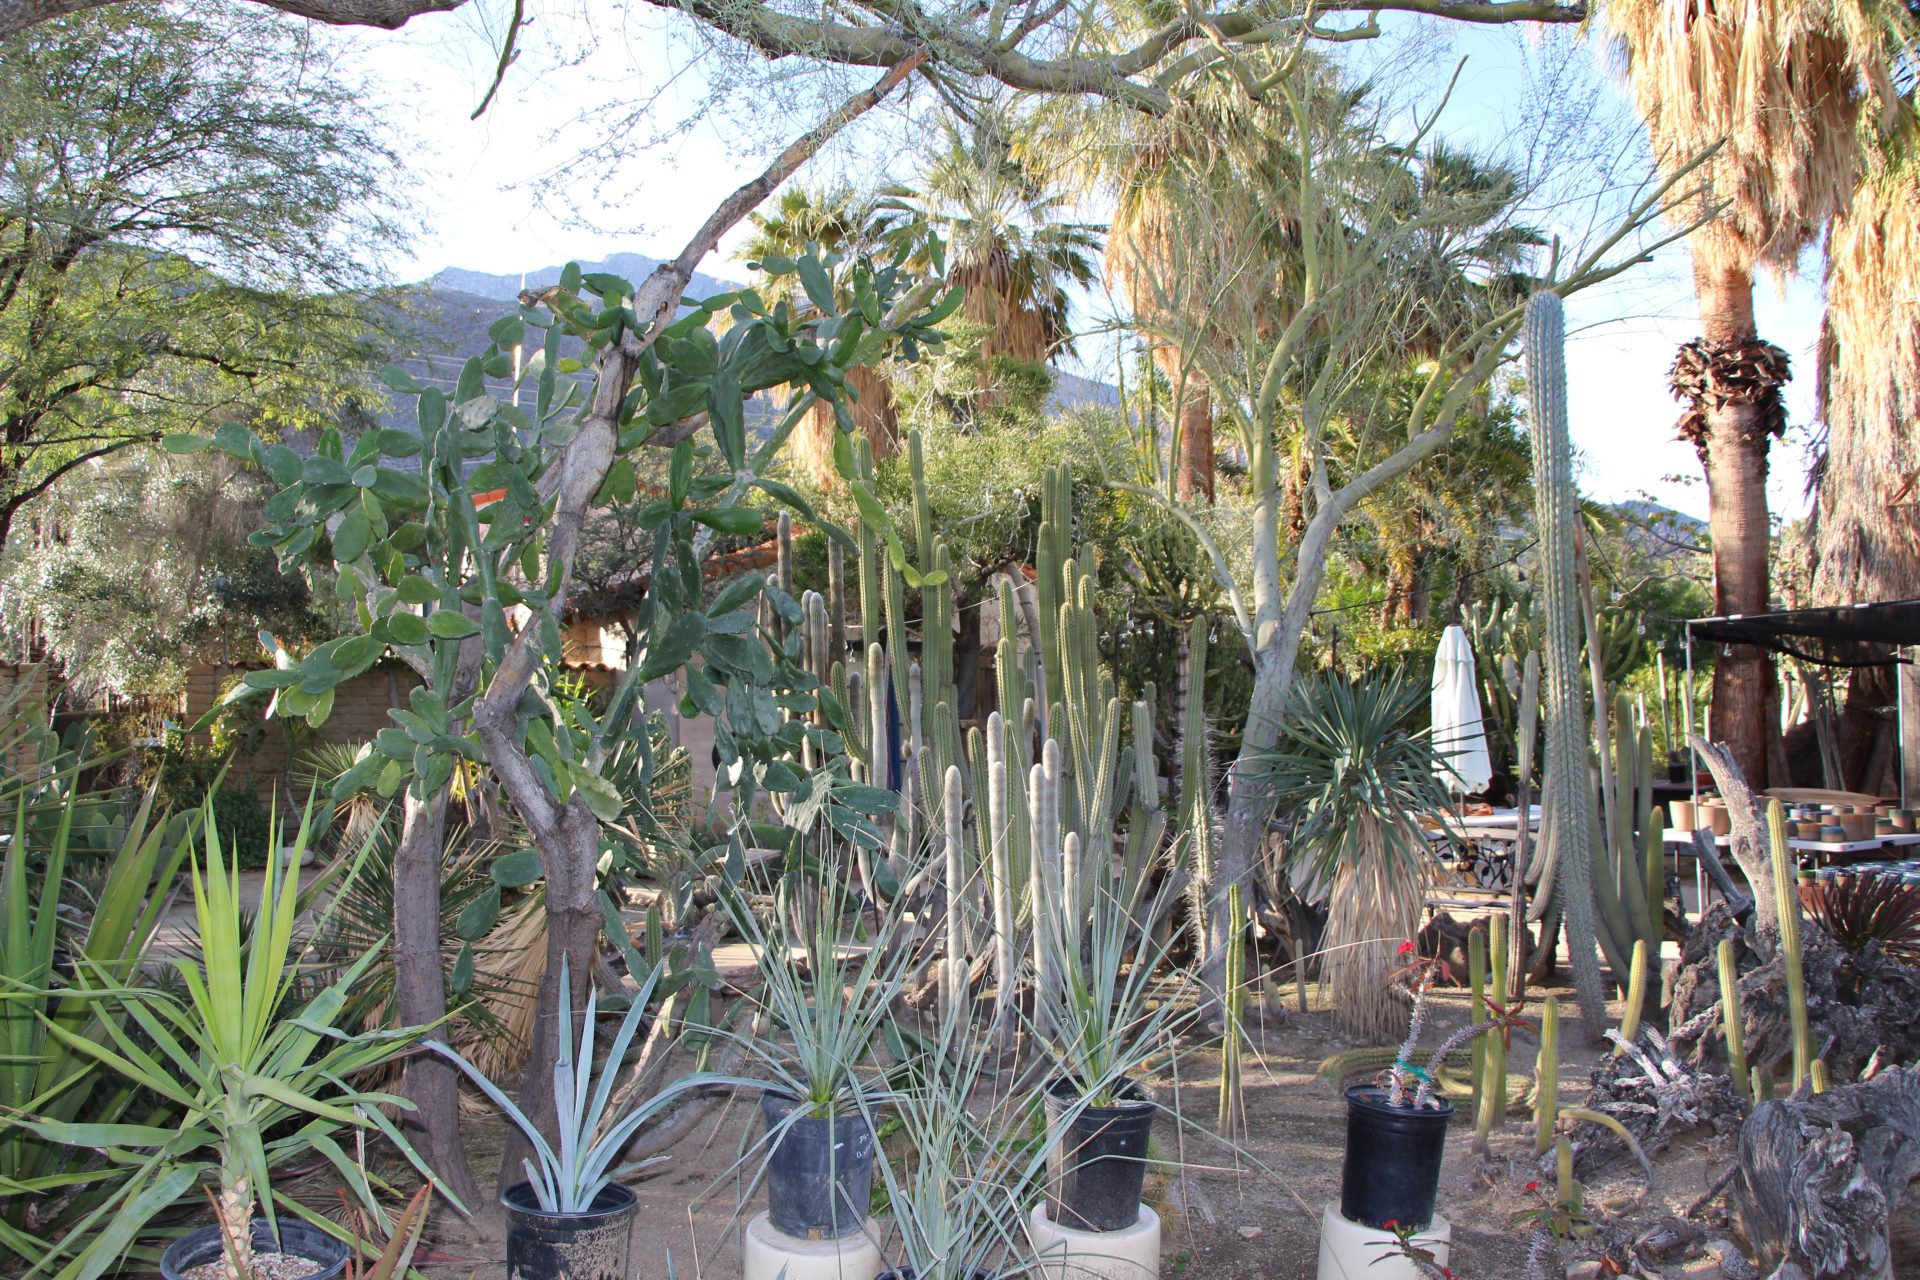 Located Just 10 Minutes Down The Road From The Indian Canyons, Is The  Worldu0027s First Cactarium, The Moorten Botanical Gardens And Cactarium.